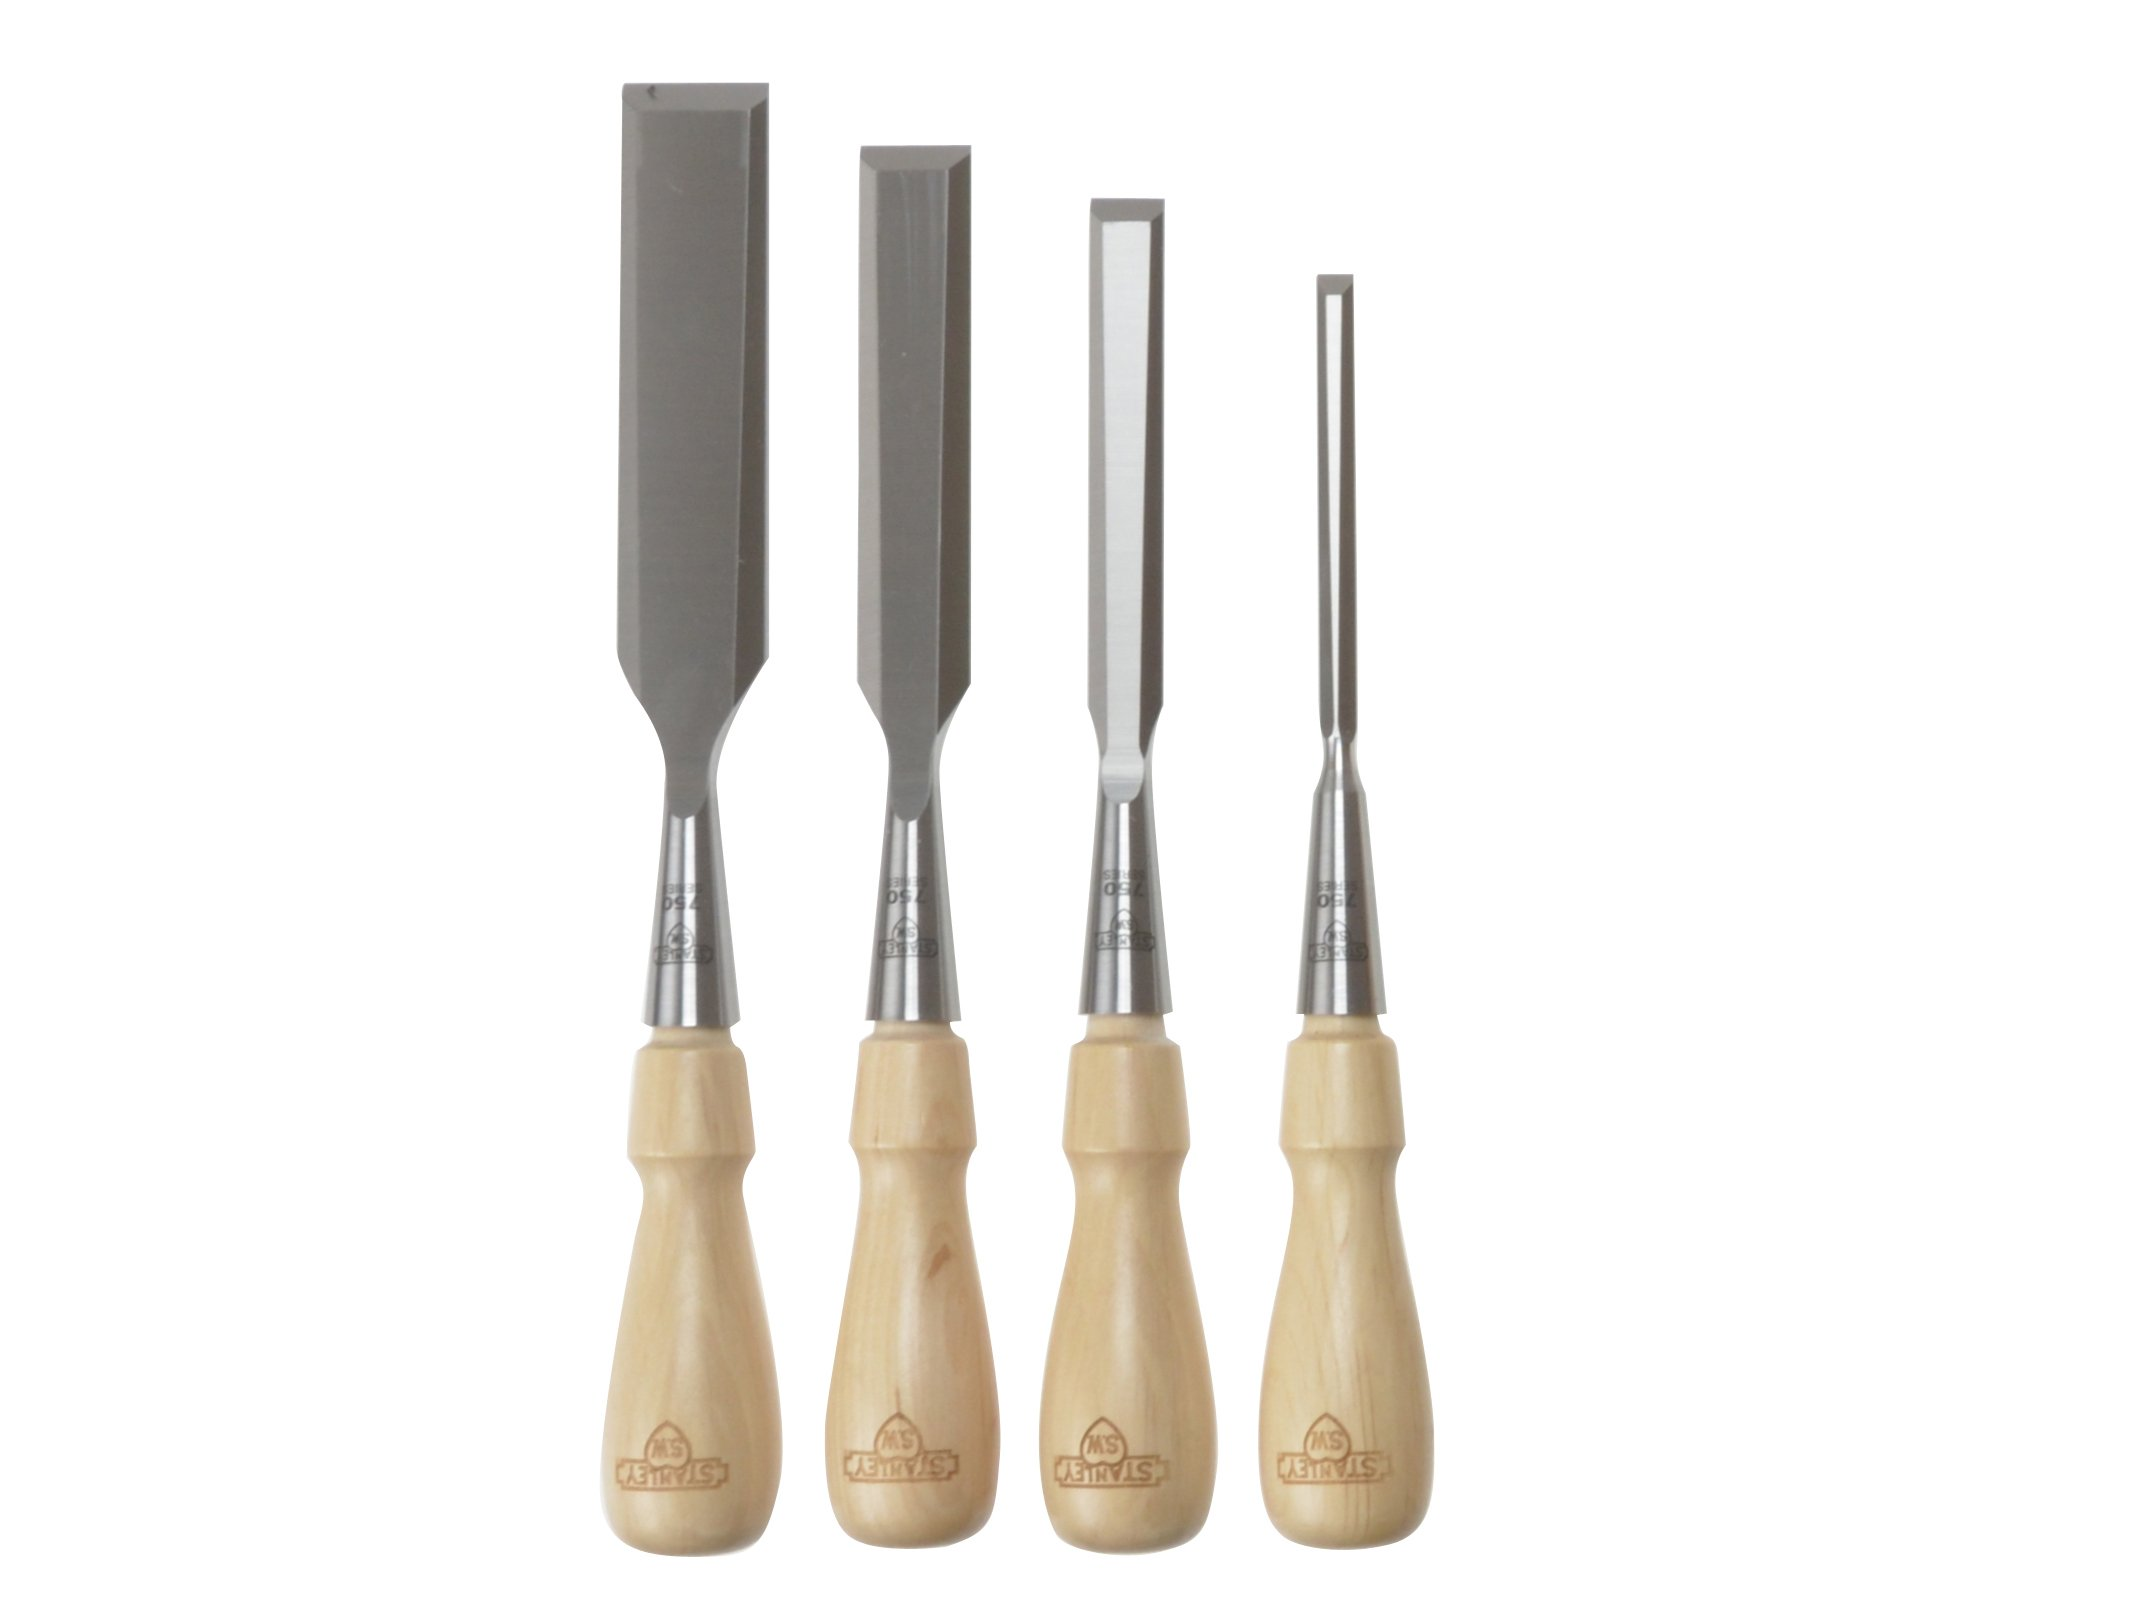 Stanley 1-16-791 Chisel-Set Sweetheart (4-piece), Silver/Tan Brown